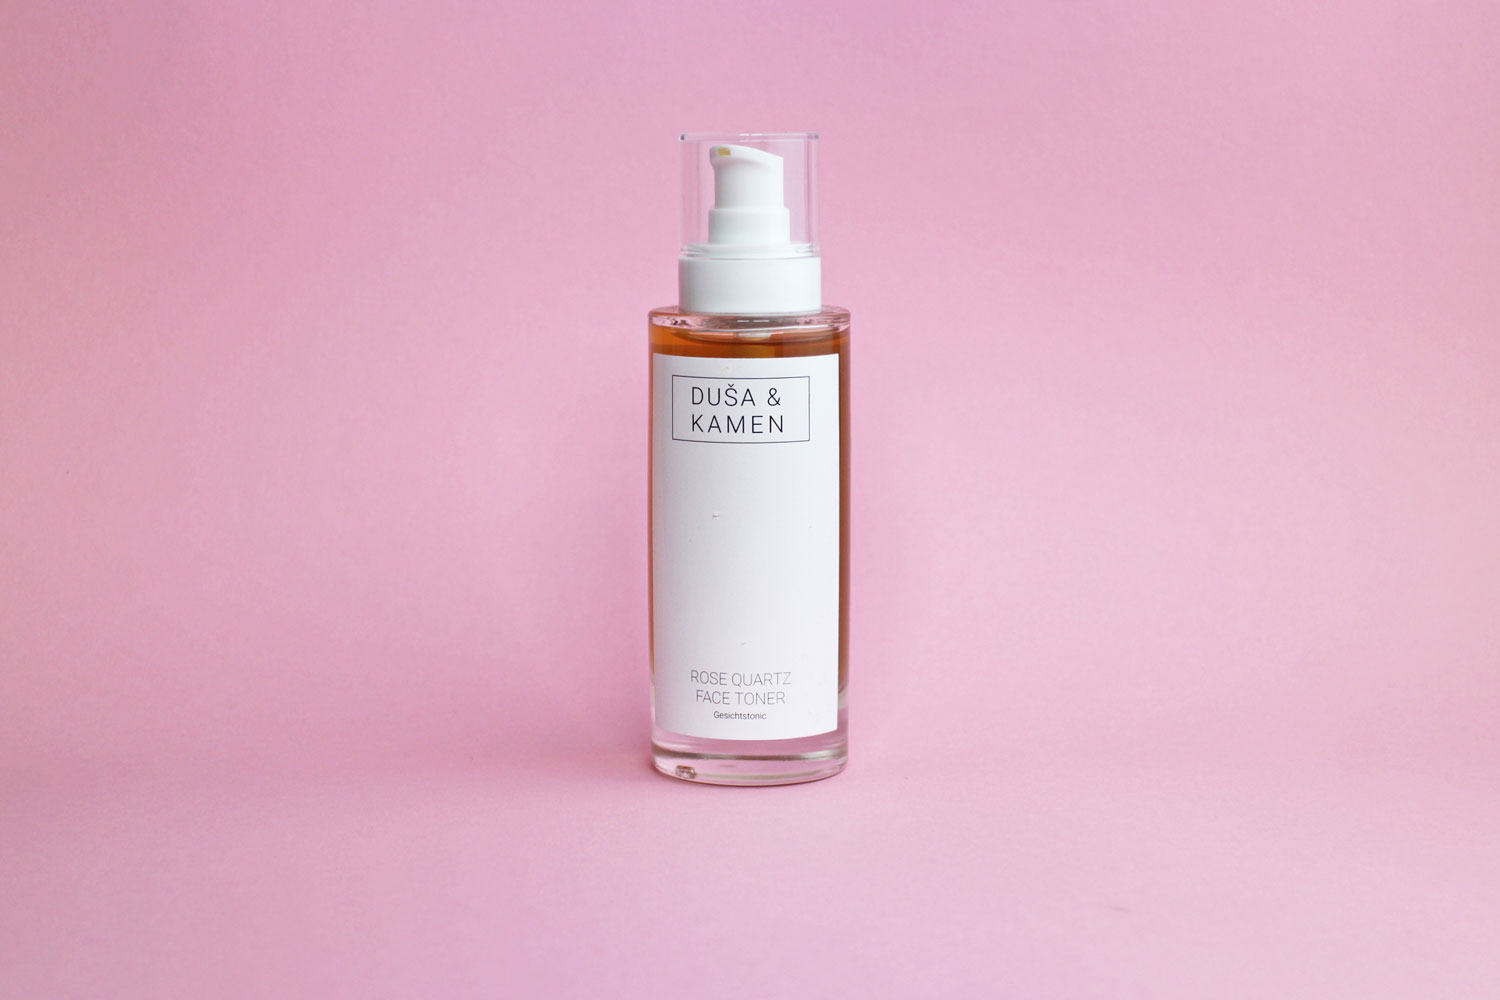 Rose Quartz Face Toner Dusa Kamen